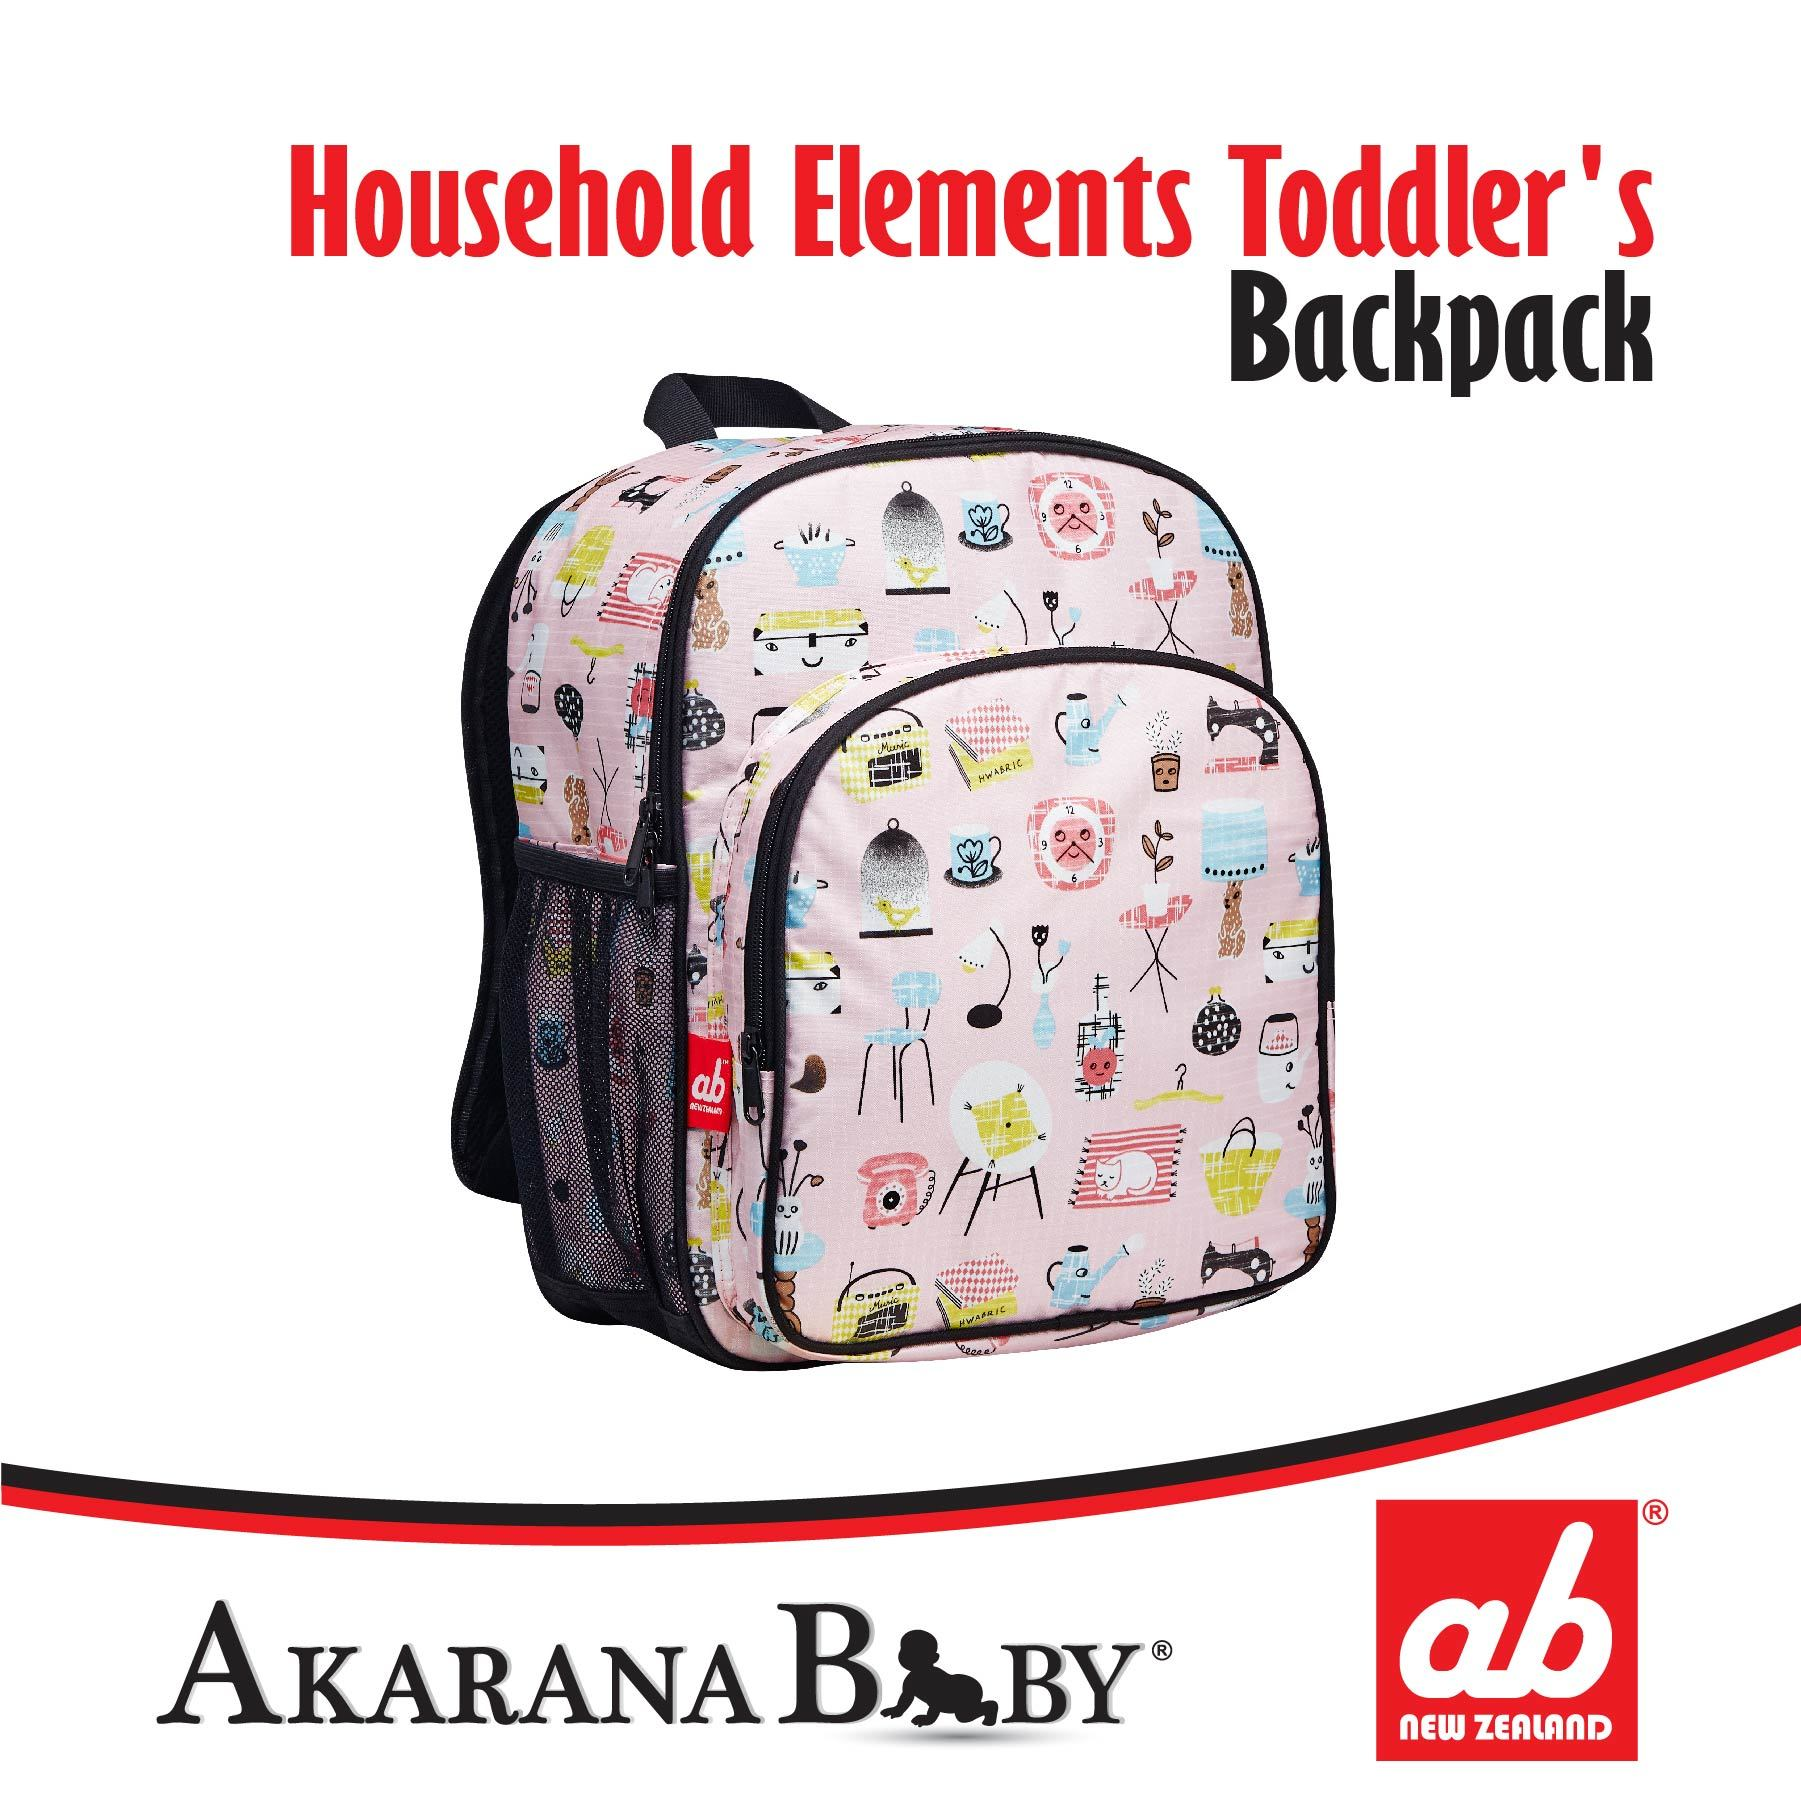 f367097597f5 Qoo10 - ab NZ Toddler Backpack   ab NZ Kids Canvas Backpack ...